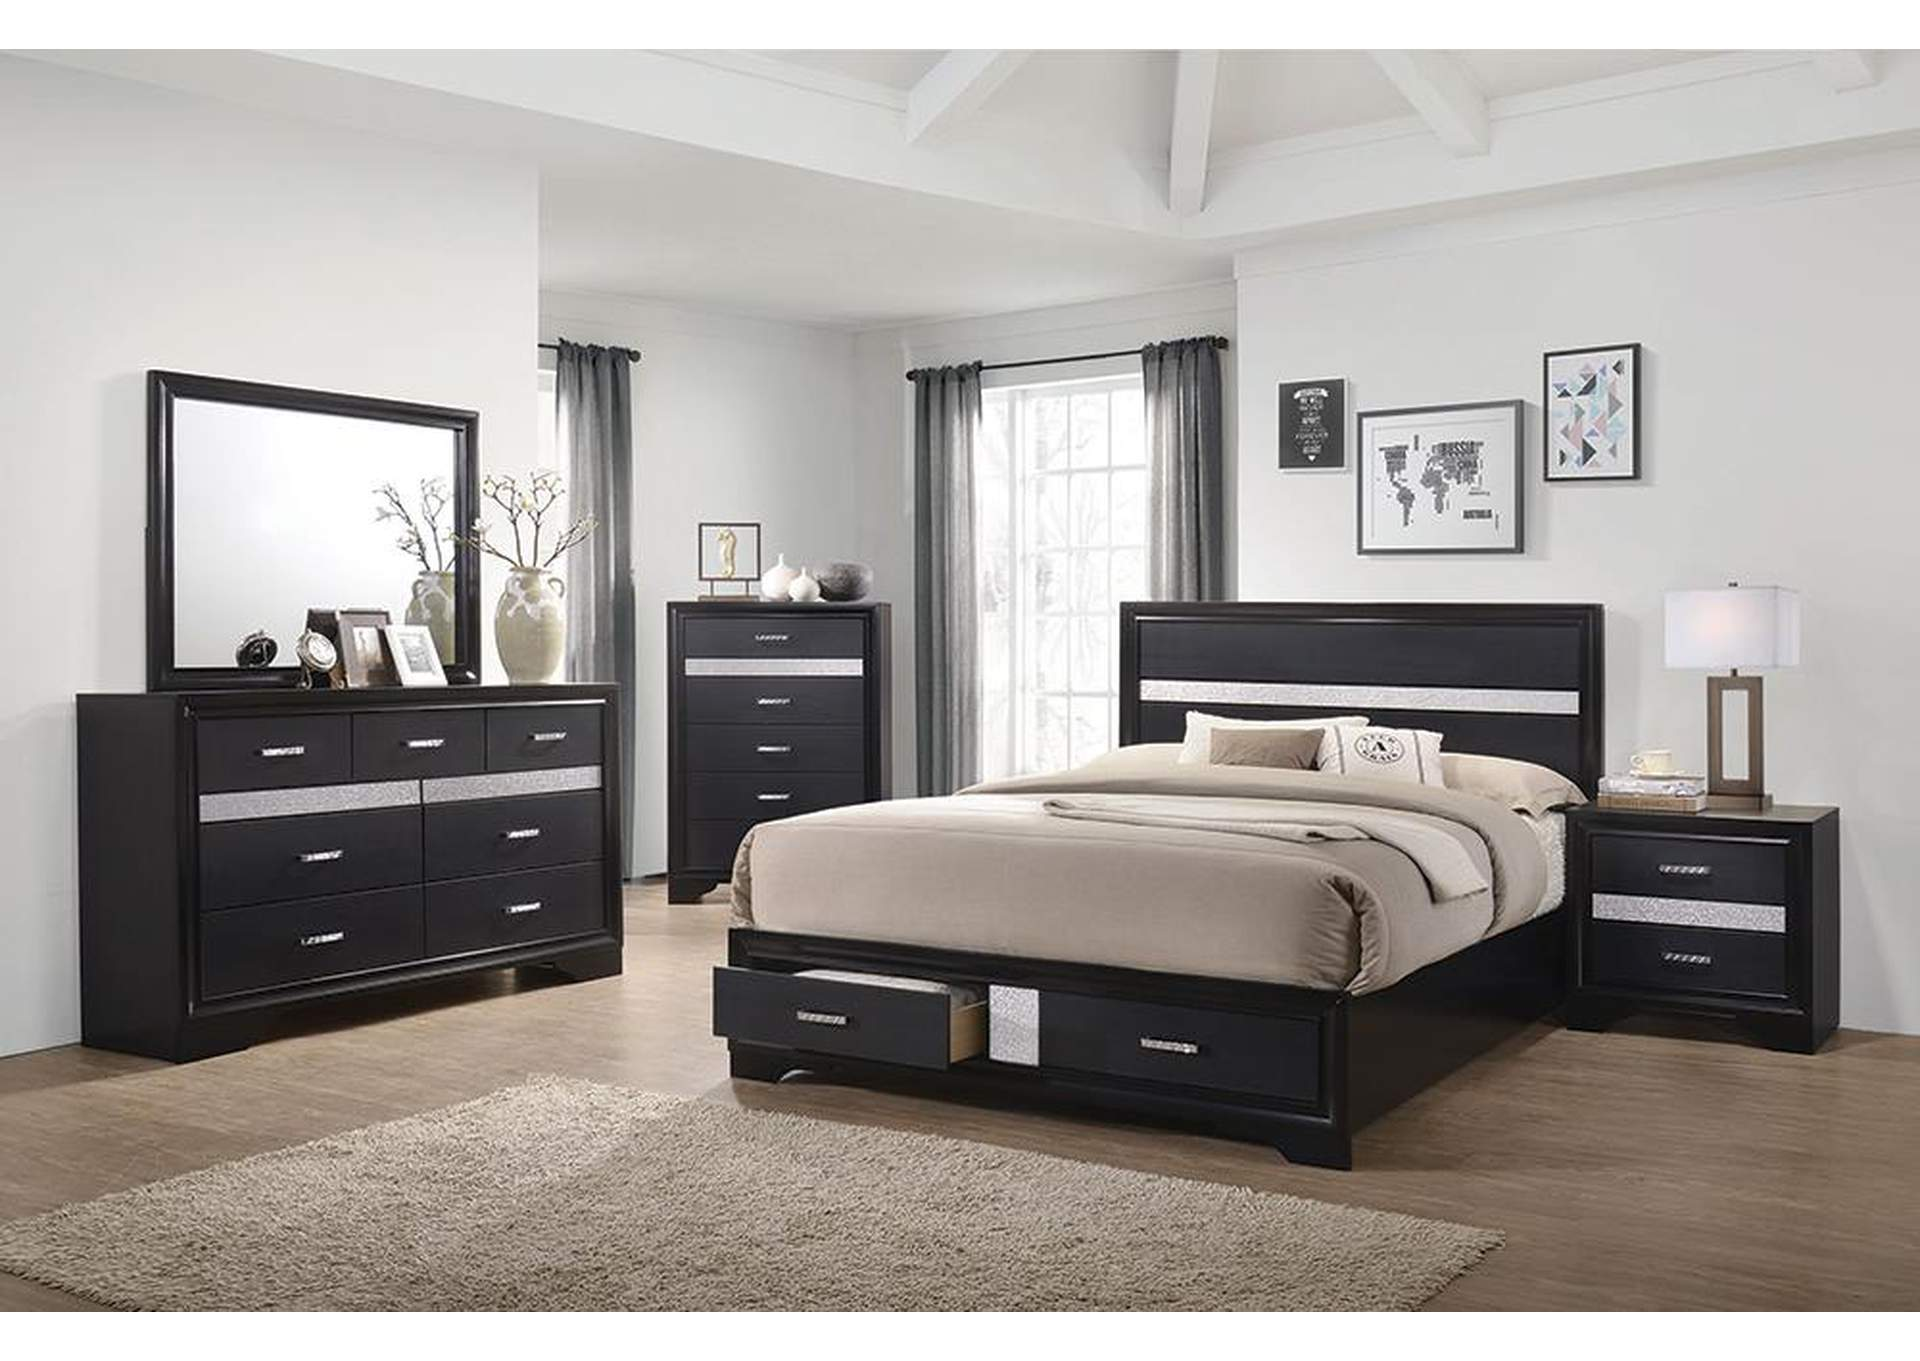 Miranda Black Eastern King Storage Bed W/ Dresser & Mirror,Coaster Furniture